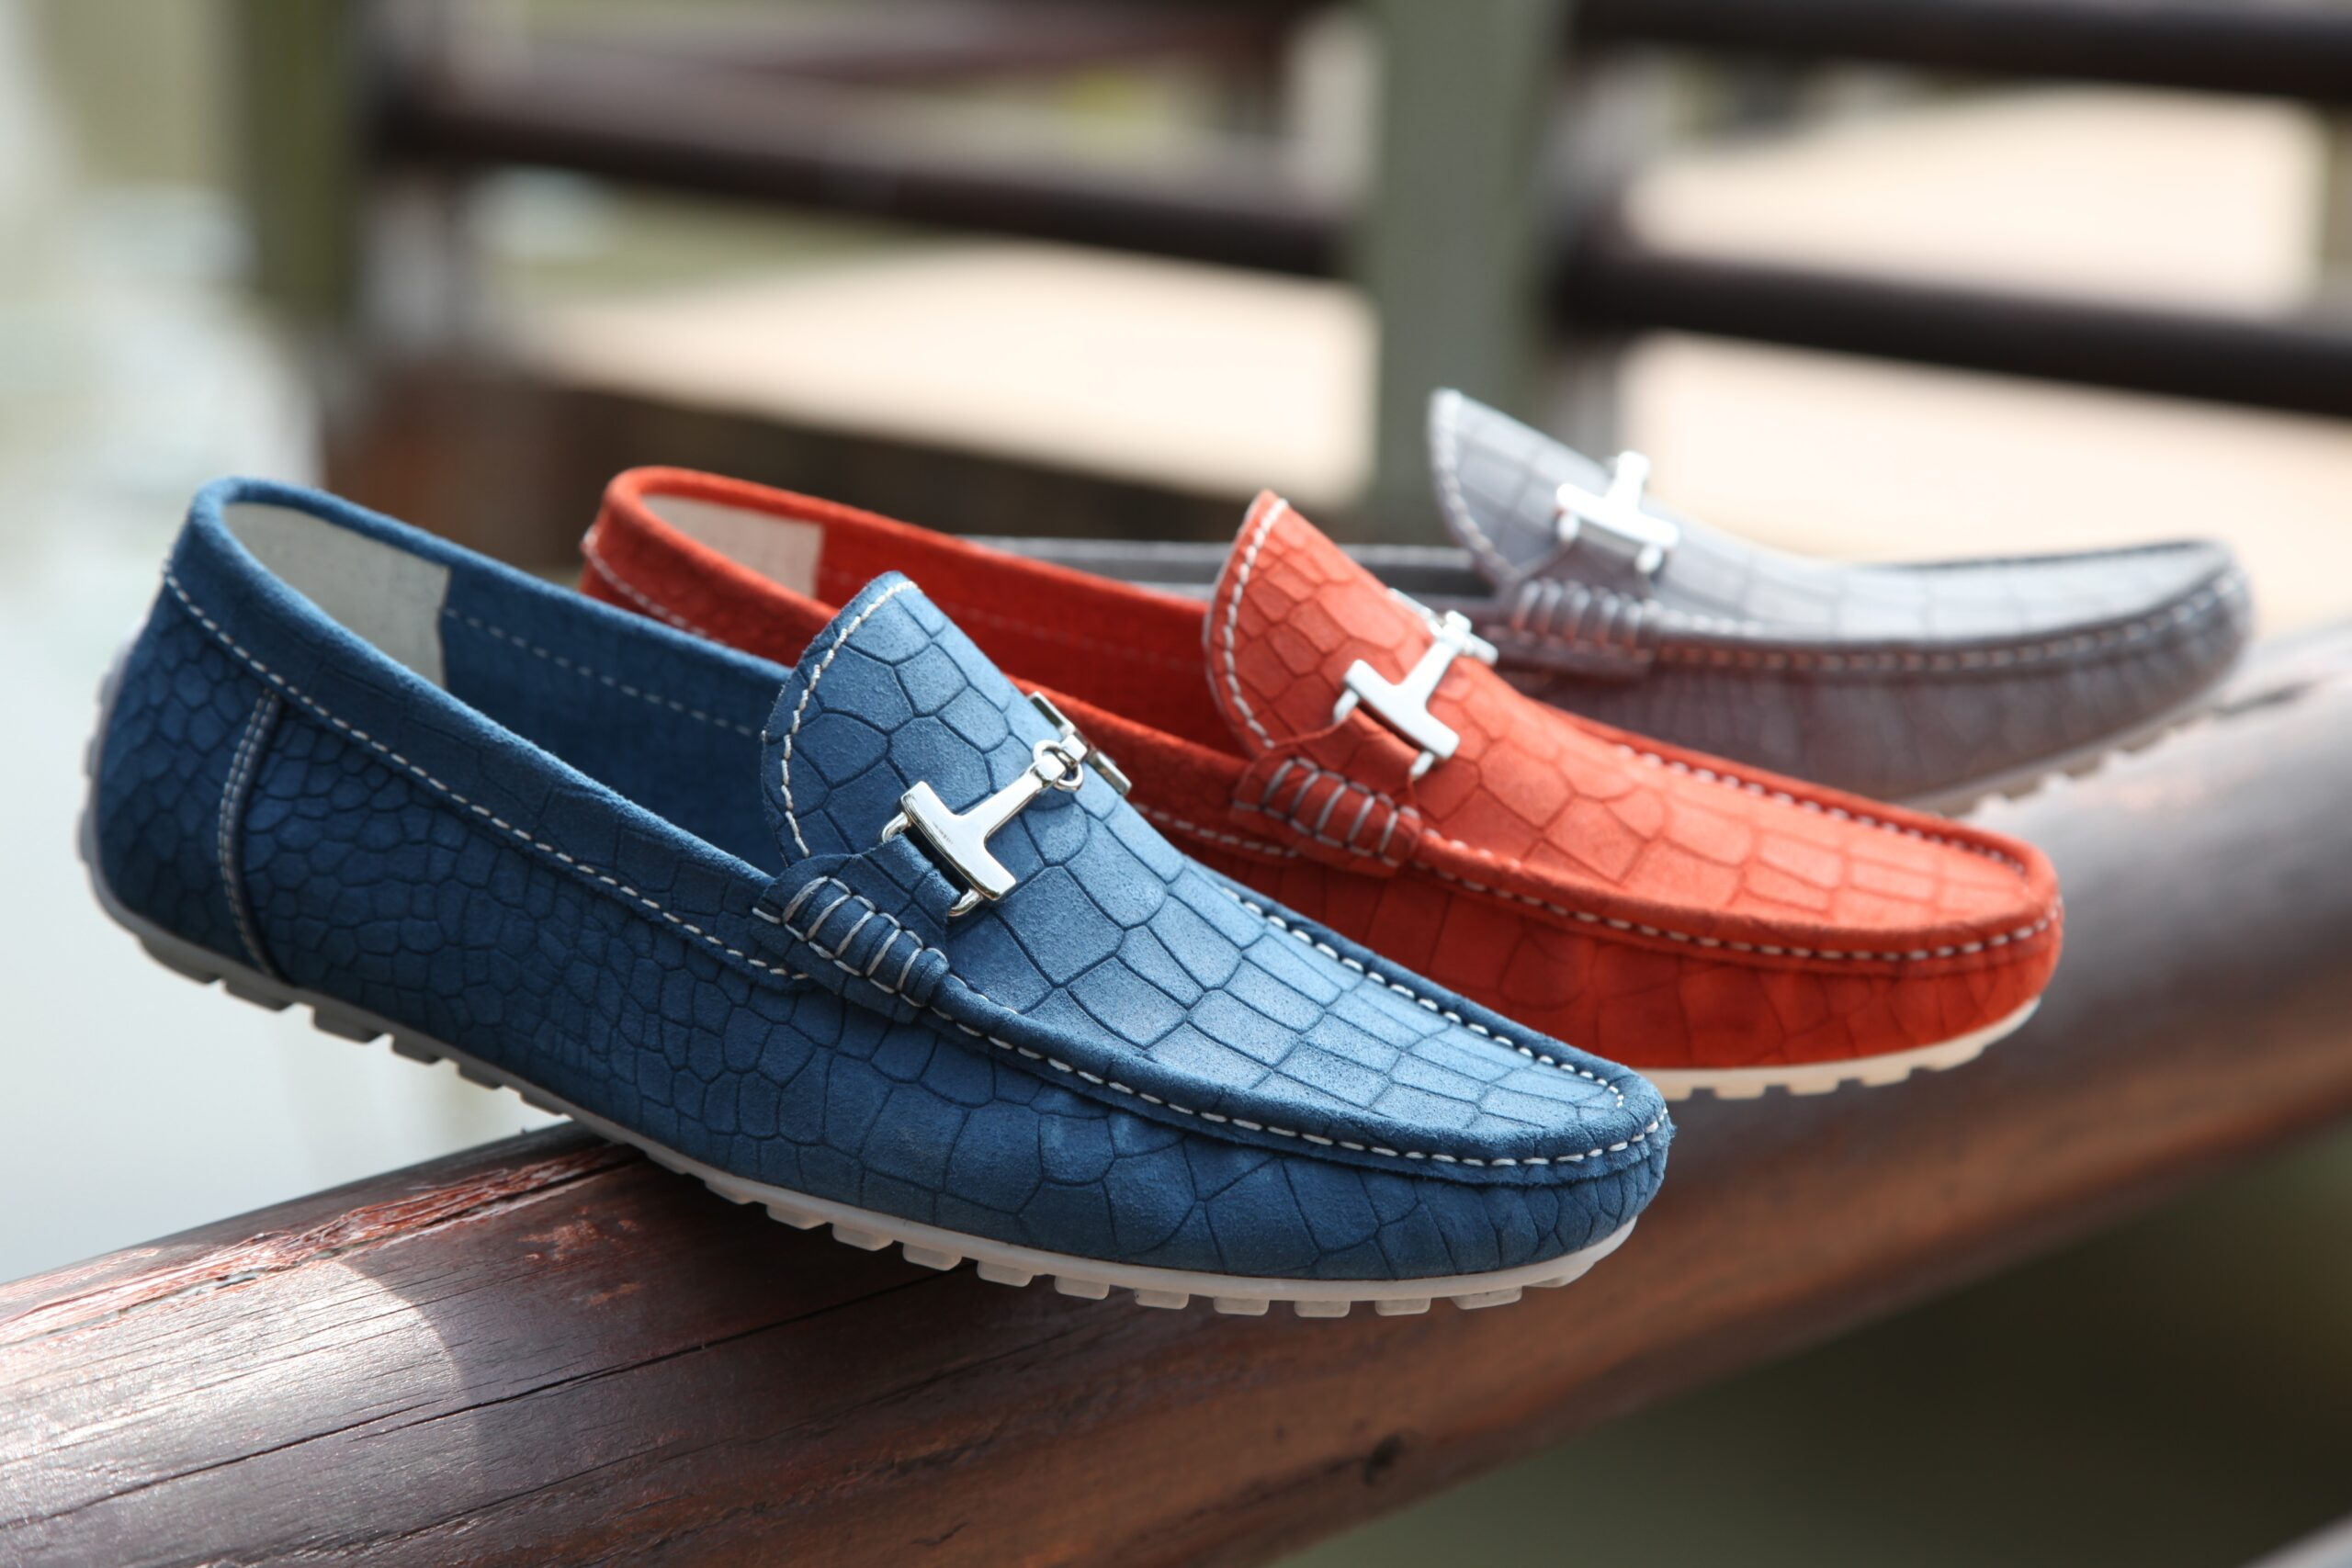 Loafers with jeans